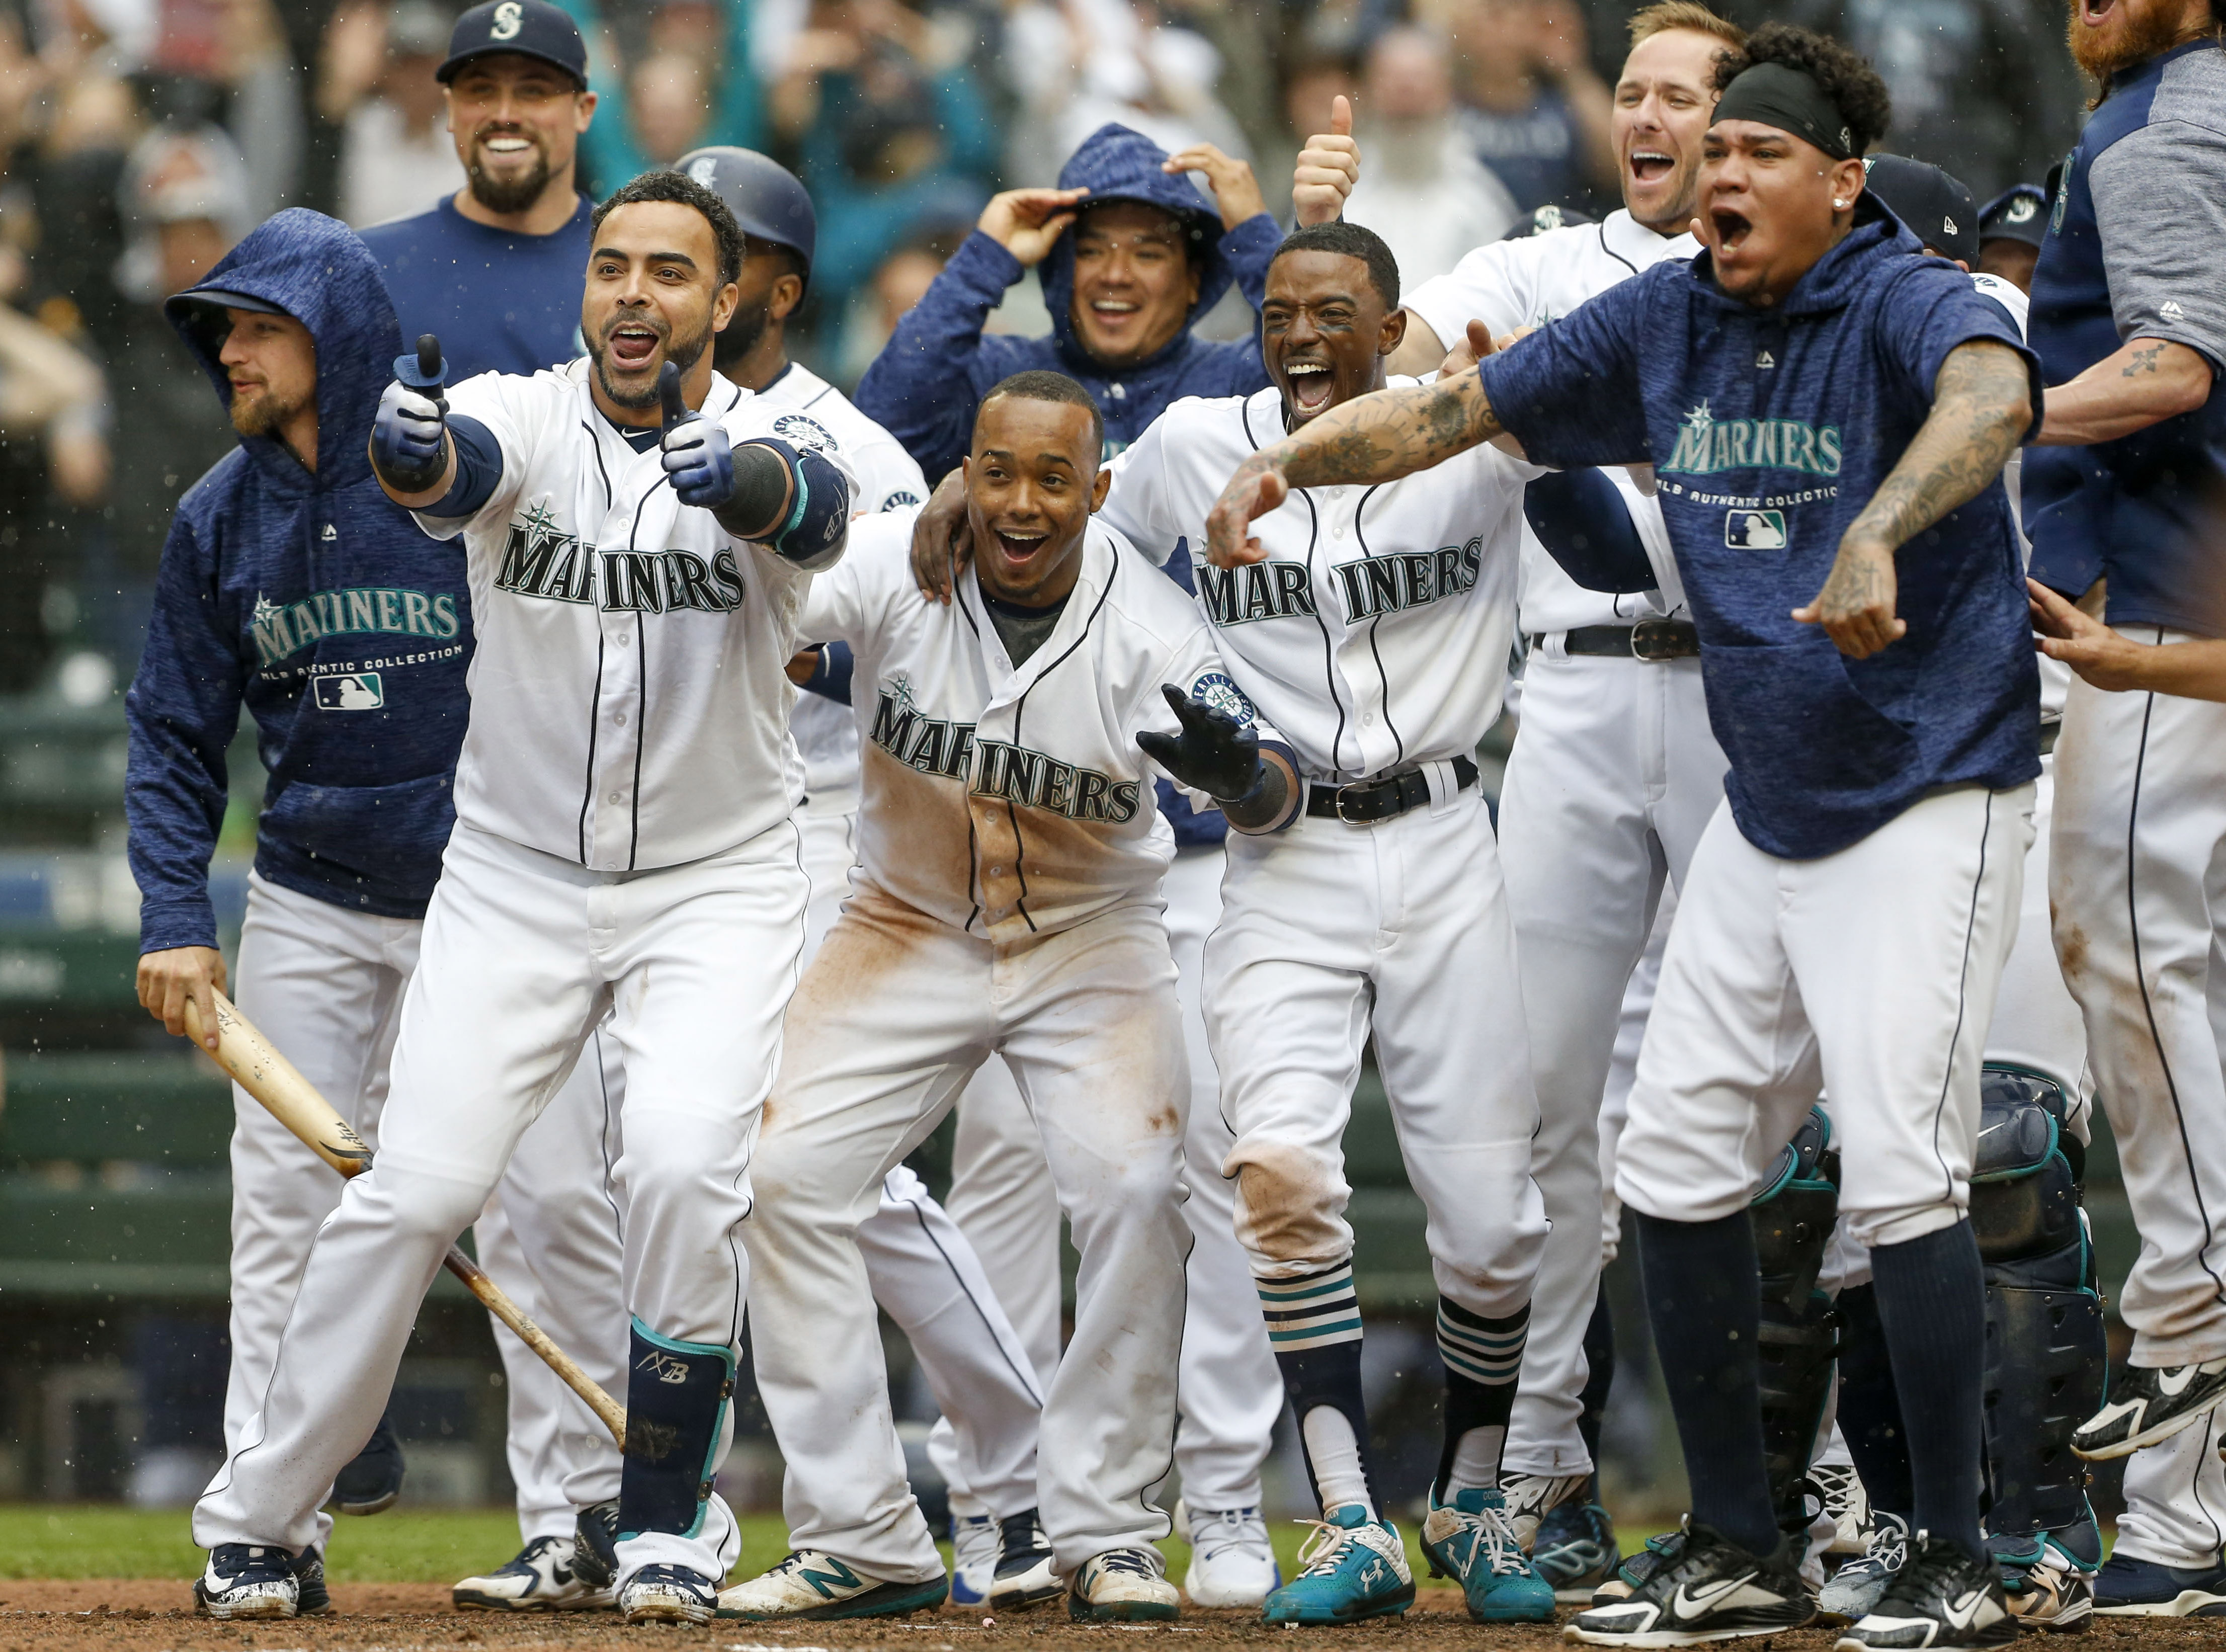 The Seattle Mariners have become experts in winning one-run games